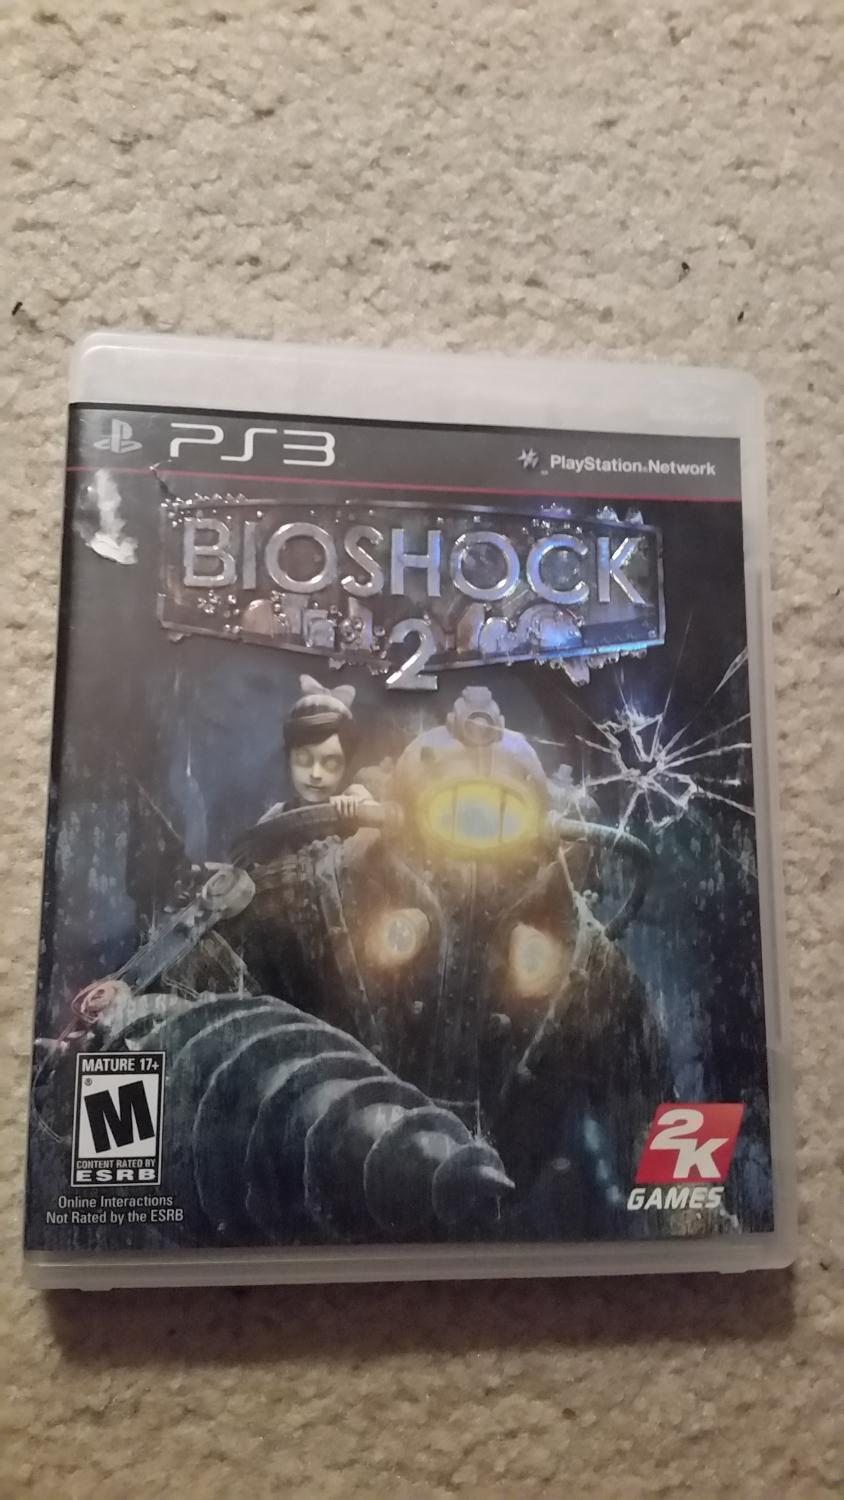 Bioshock 2 Ps3 game